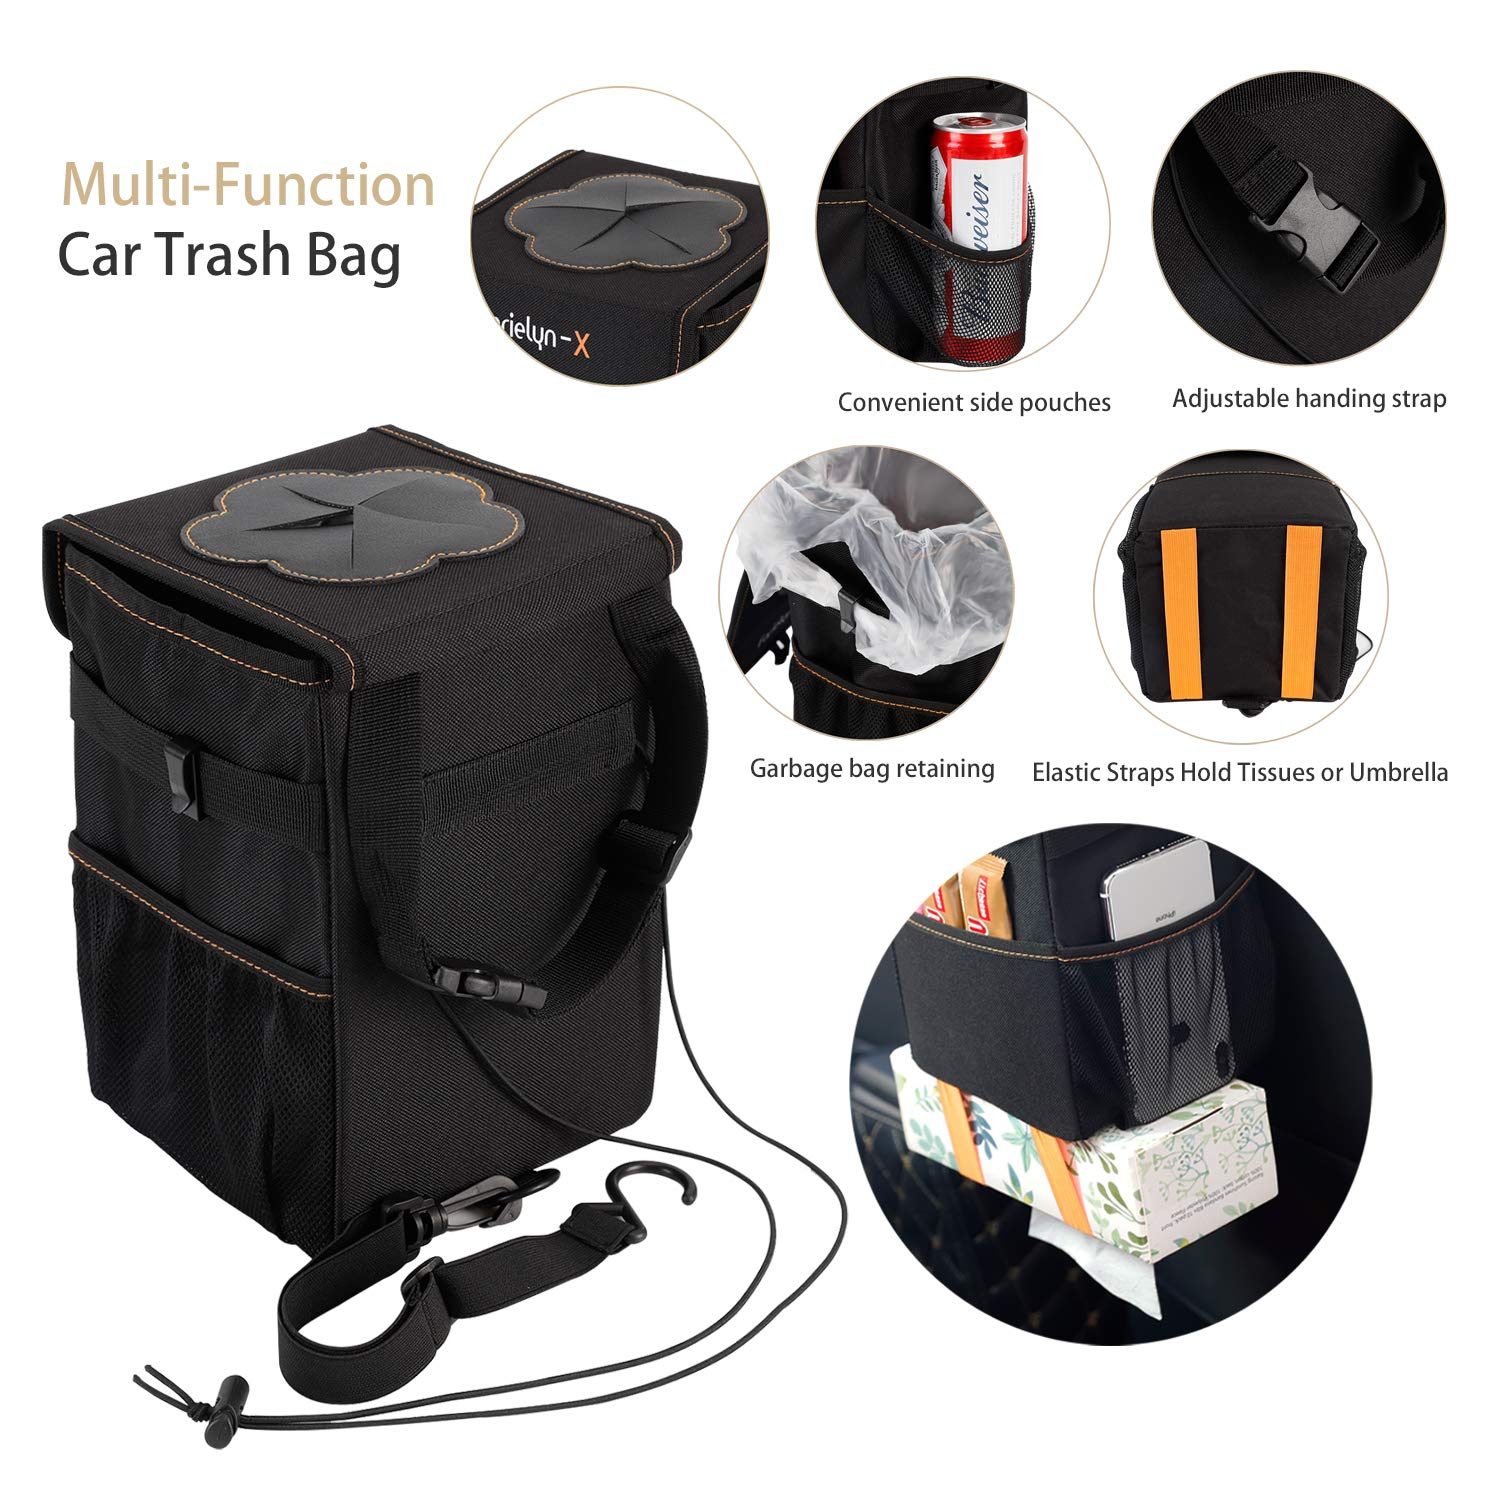 Car Trash Can with Lid and Storage Pockets Leak-Proof Vinyl Farielyn-X Car Trash Garbage Bag Can